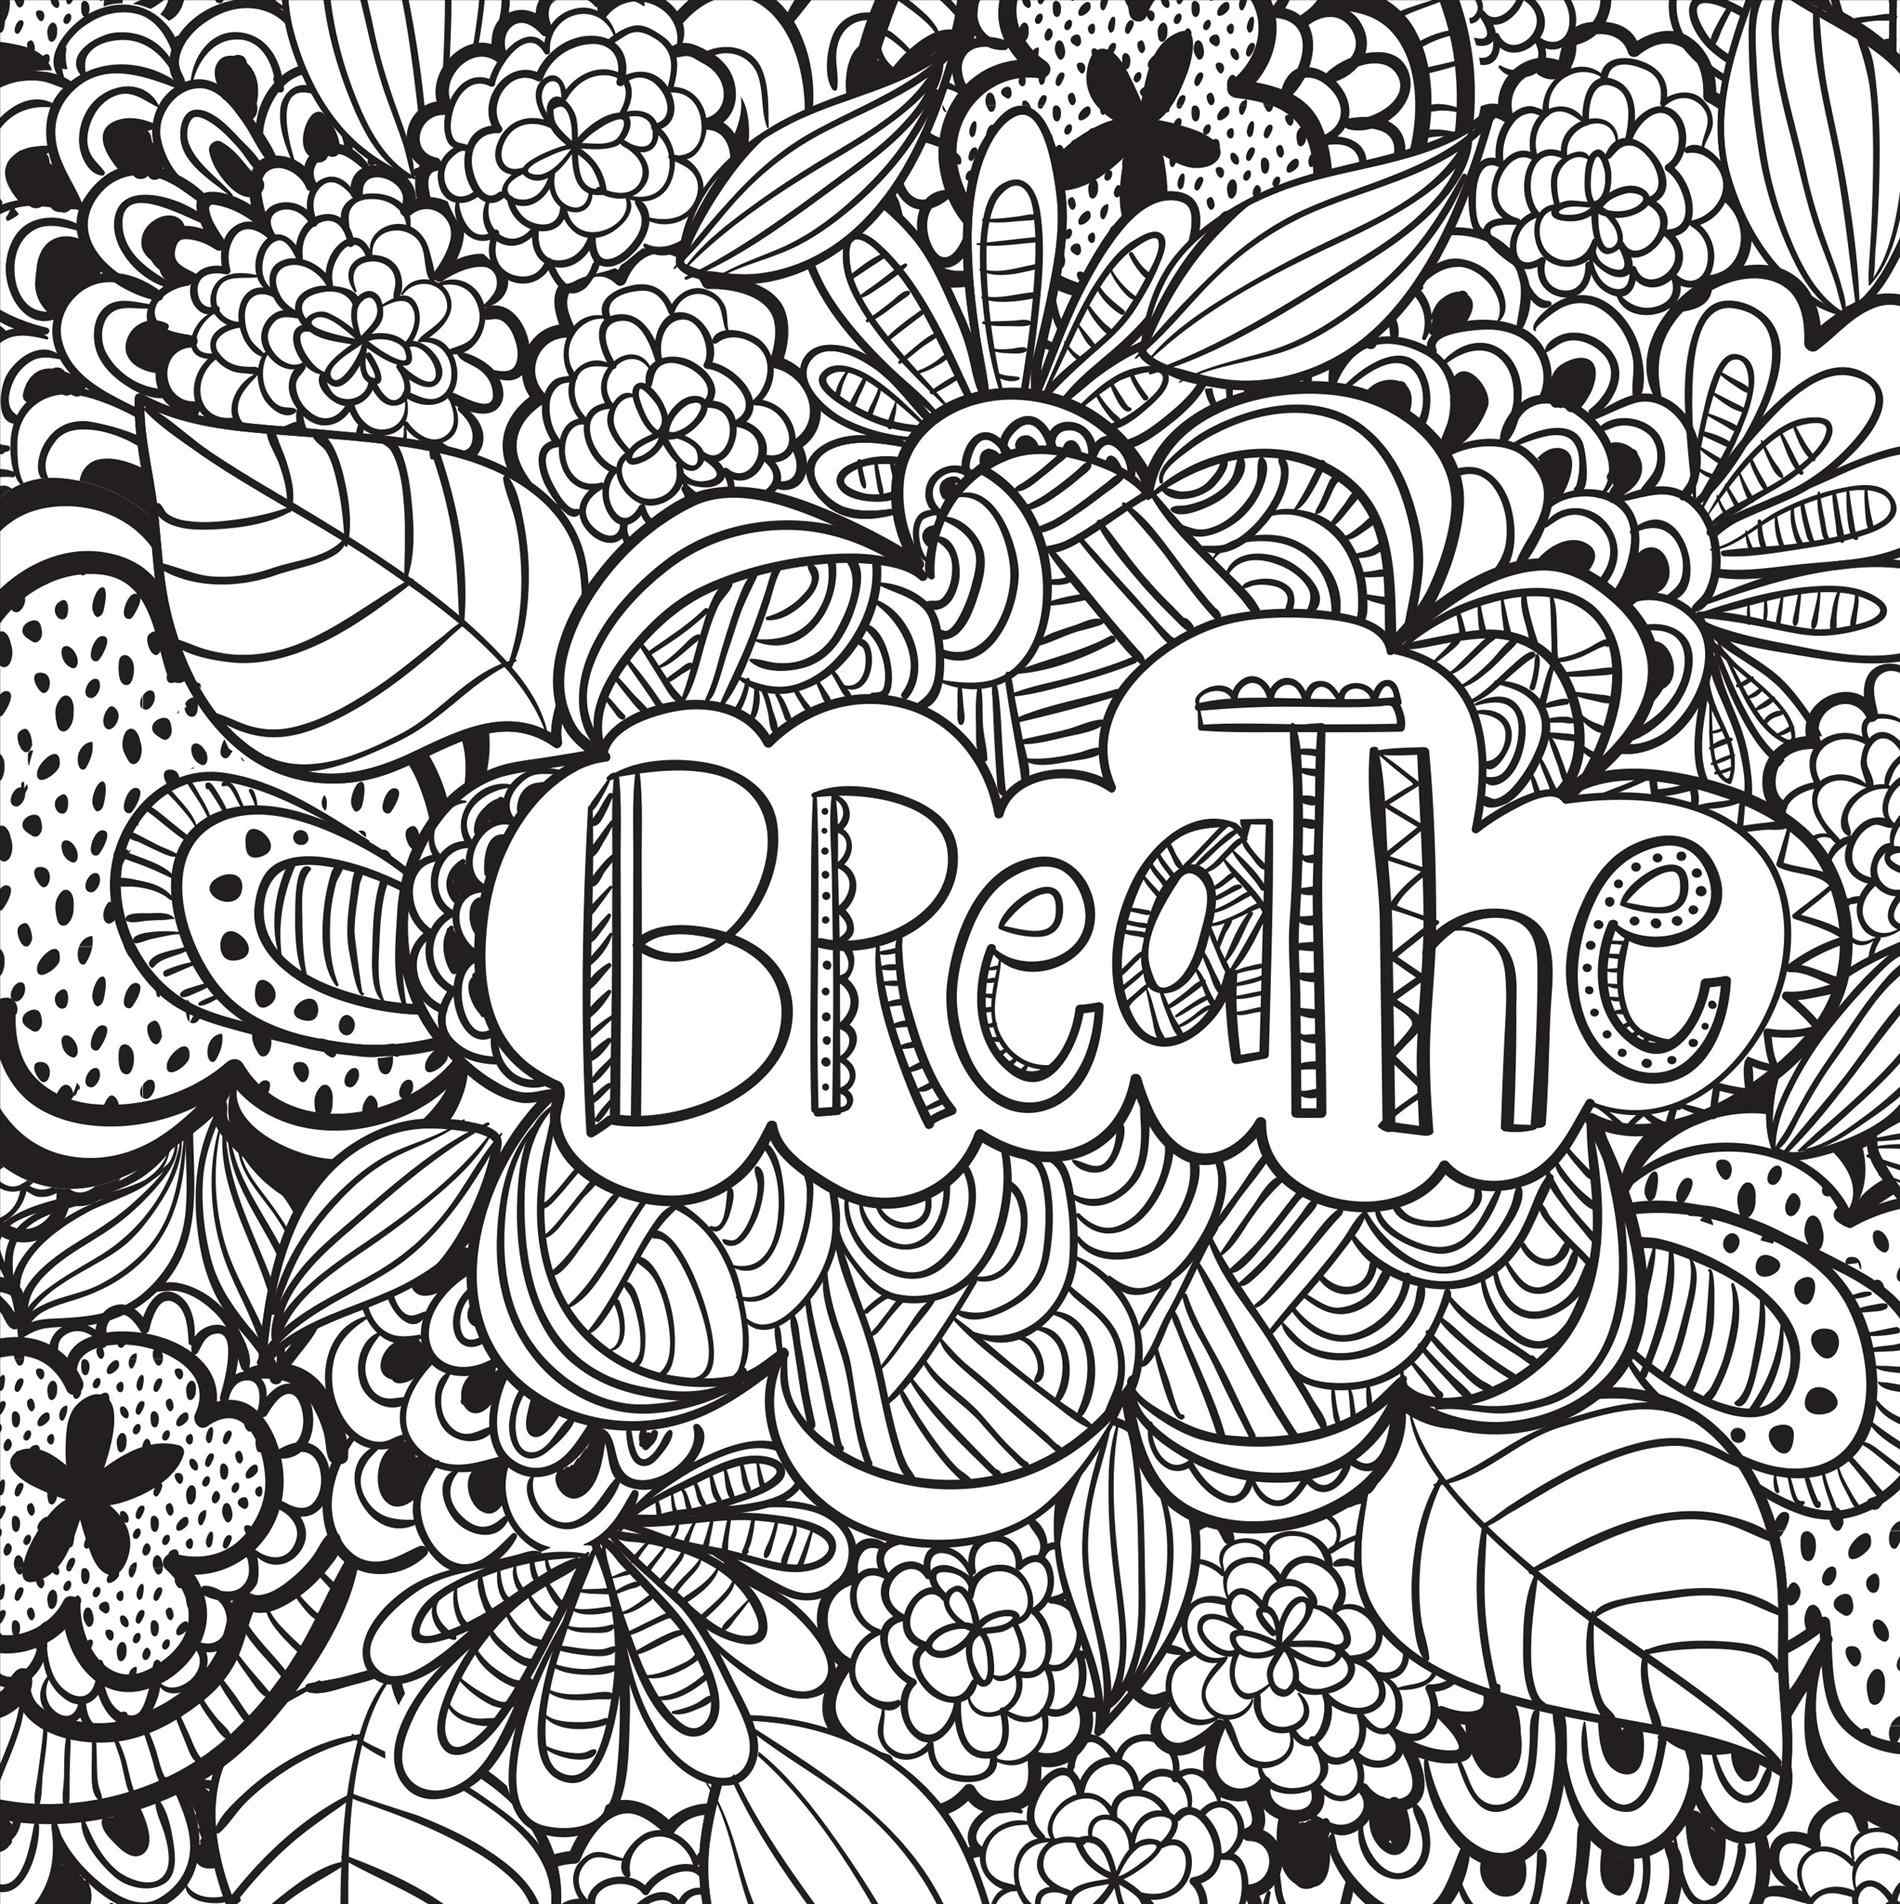 Abstract Coloring Pages with Words Gallery Of Snowflake Coloring Pages for Adults Coloring Pages Inspiring Printable